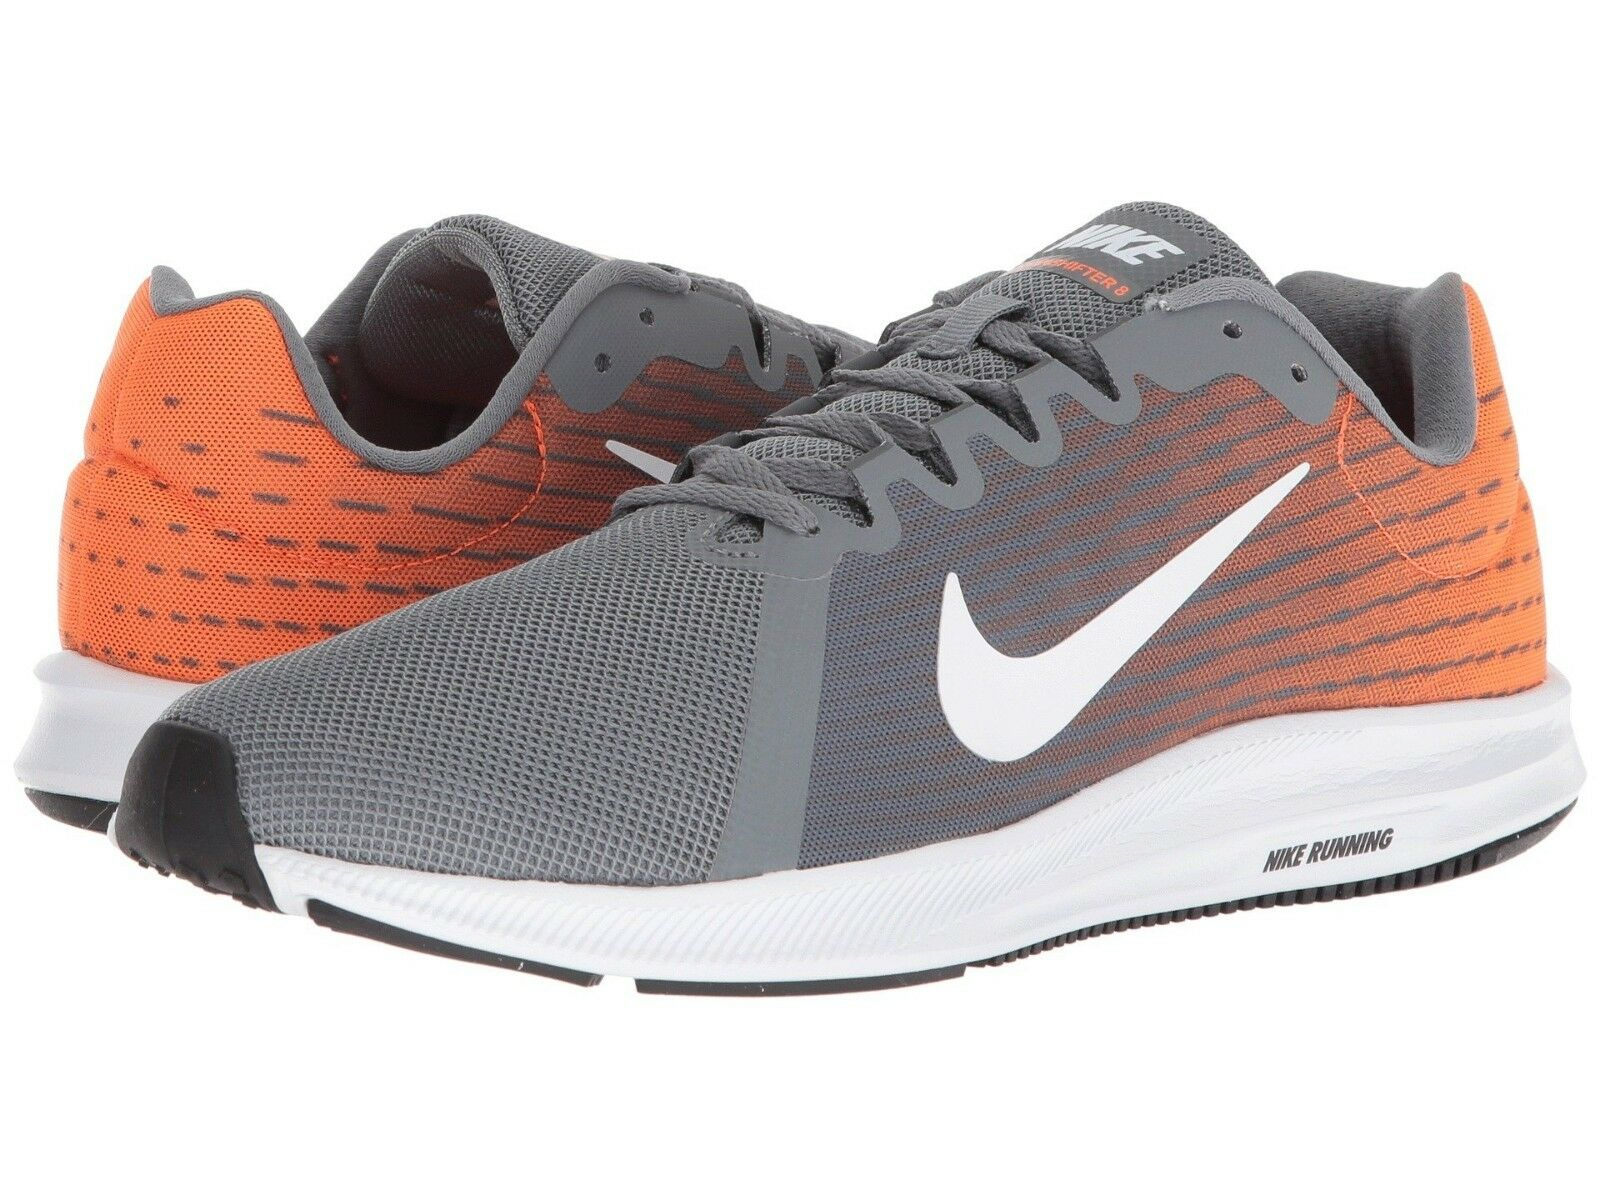 Nike DOWNSHIFTER 8 MENS RUNNING SHOES GREY 908984-003 9 - 13